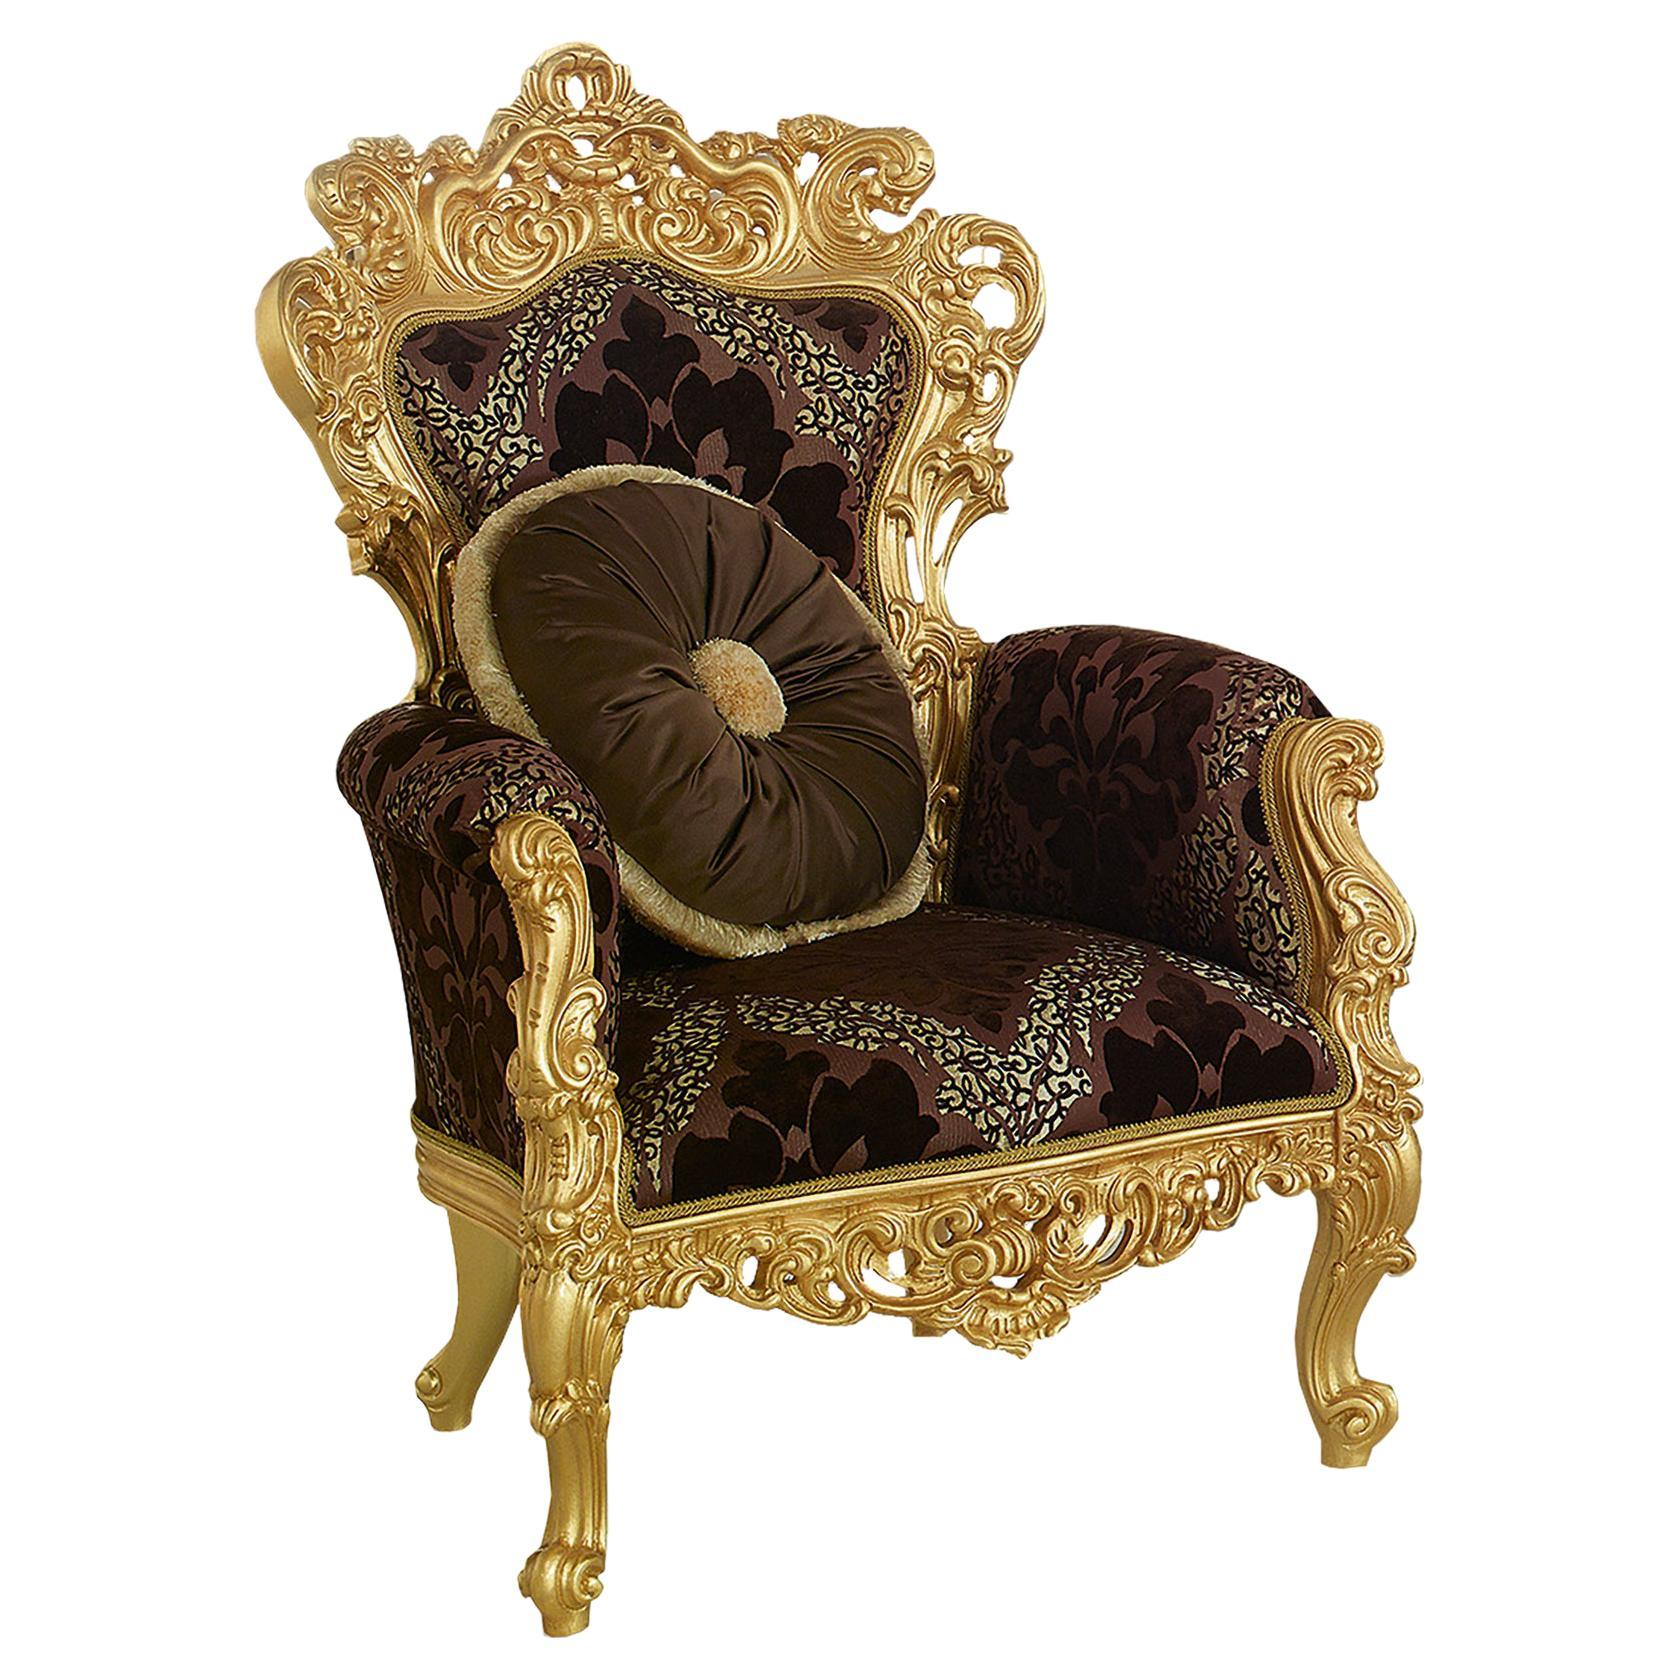 Royal Throne Armchair in Gold Leaf Finish and Premium Fabric